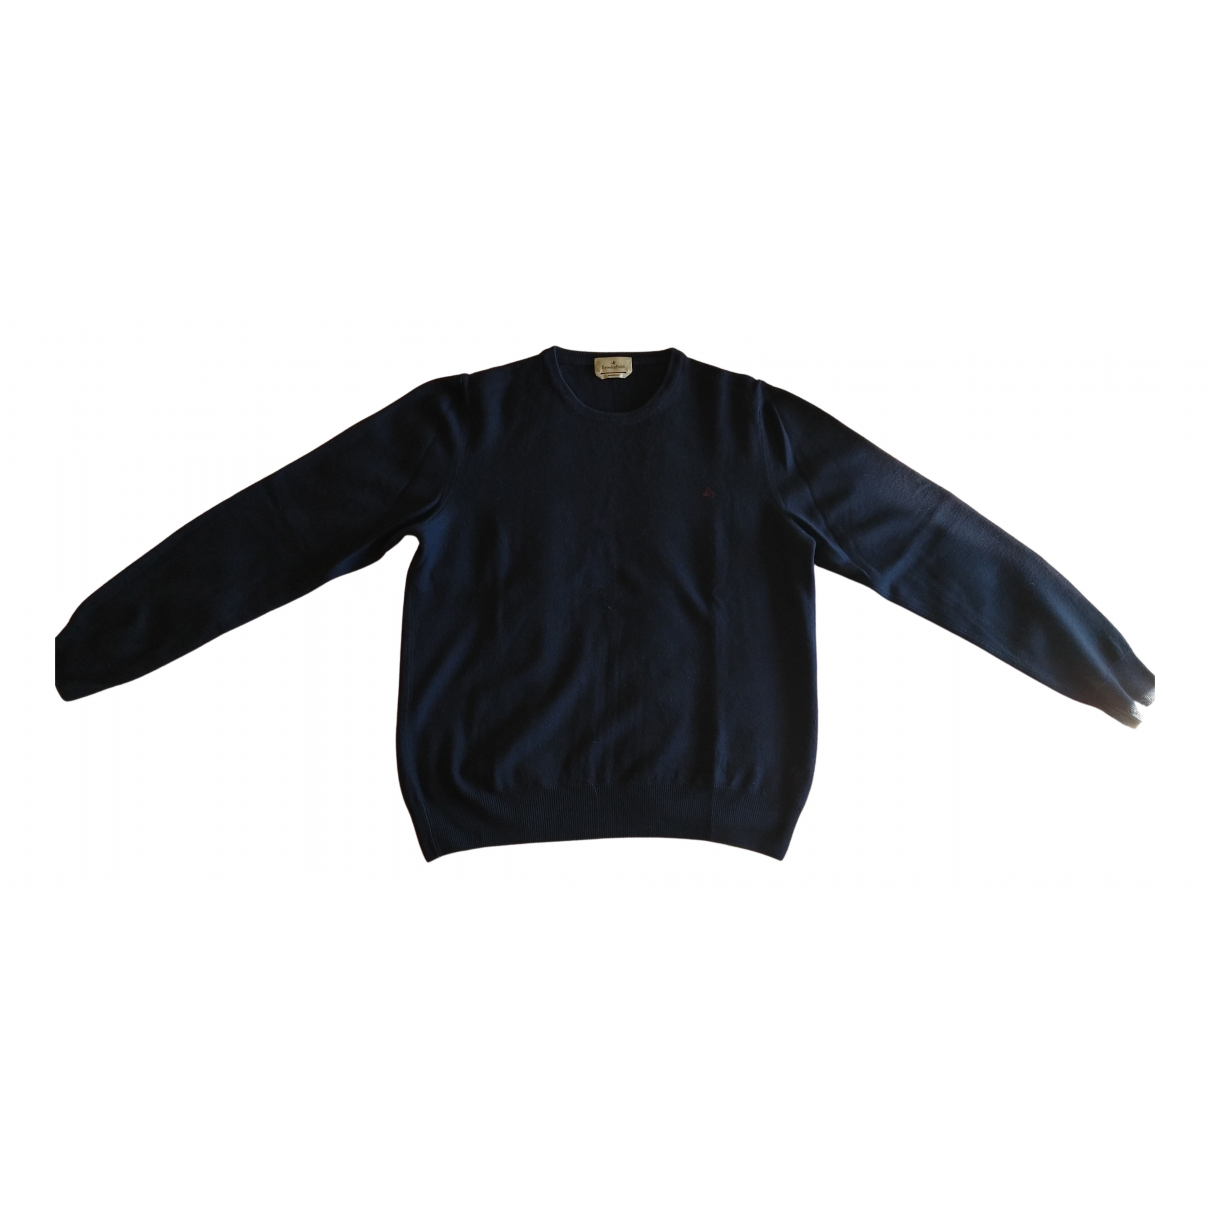 Brooksfield N Blue Wool Knitwear & Sweatshirts for Men 52 IT